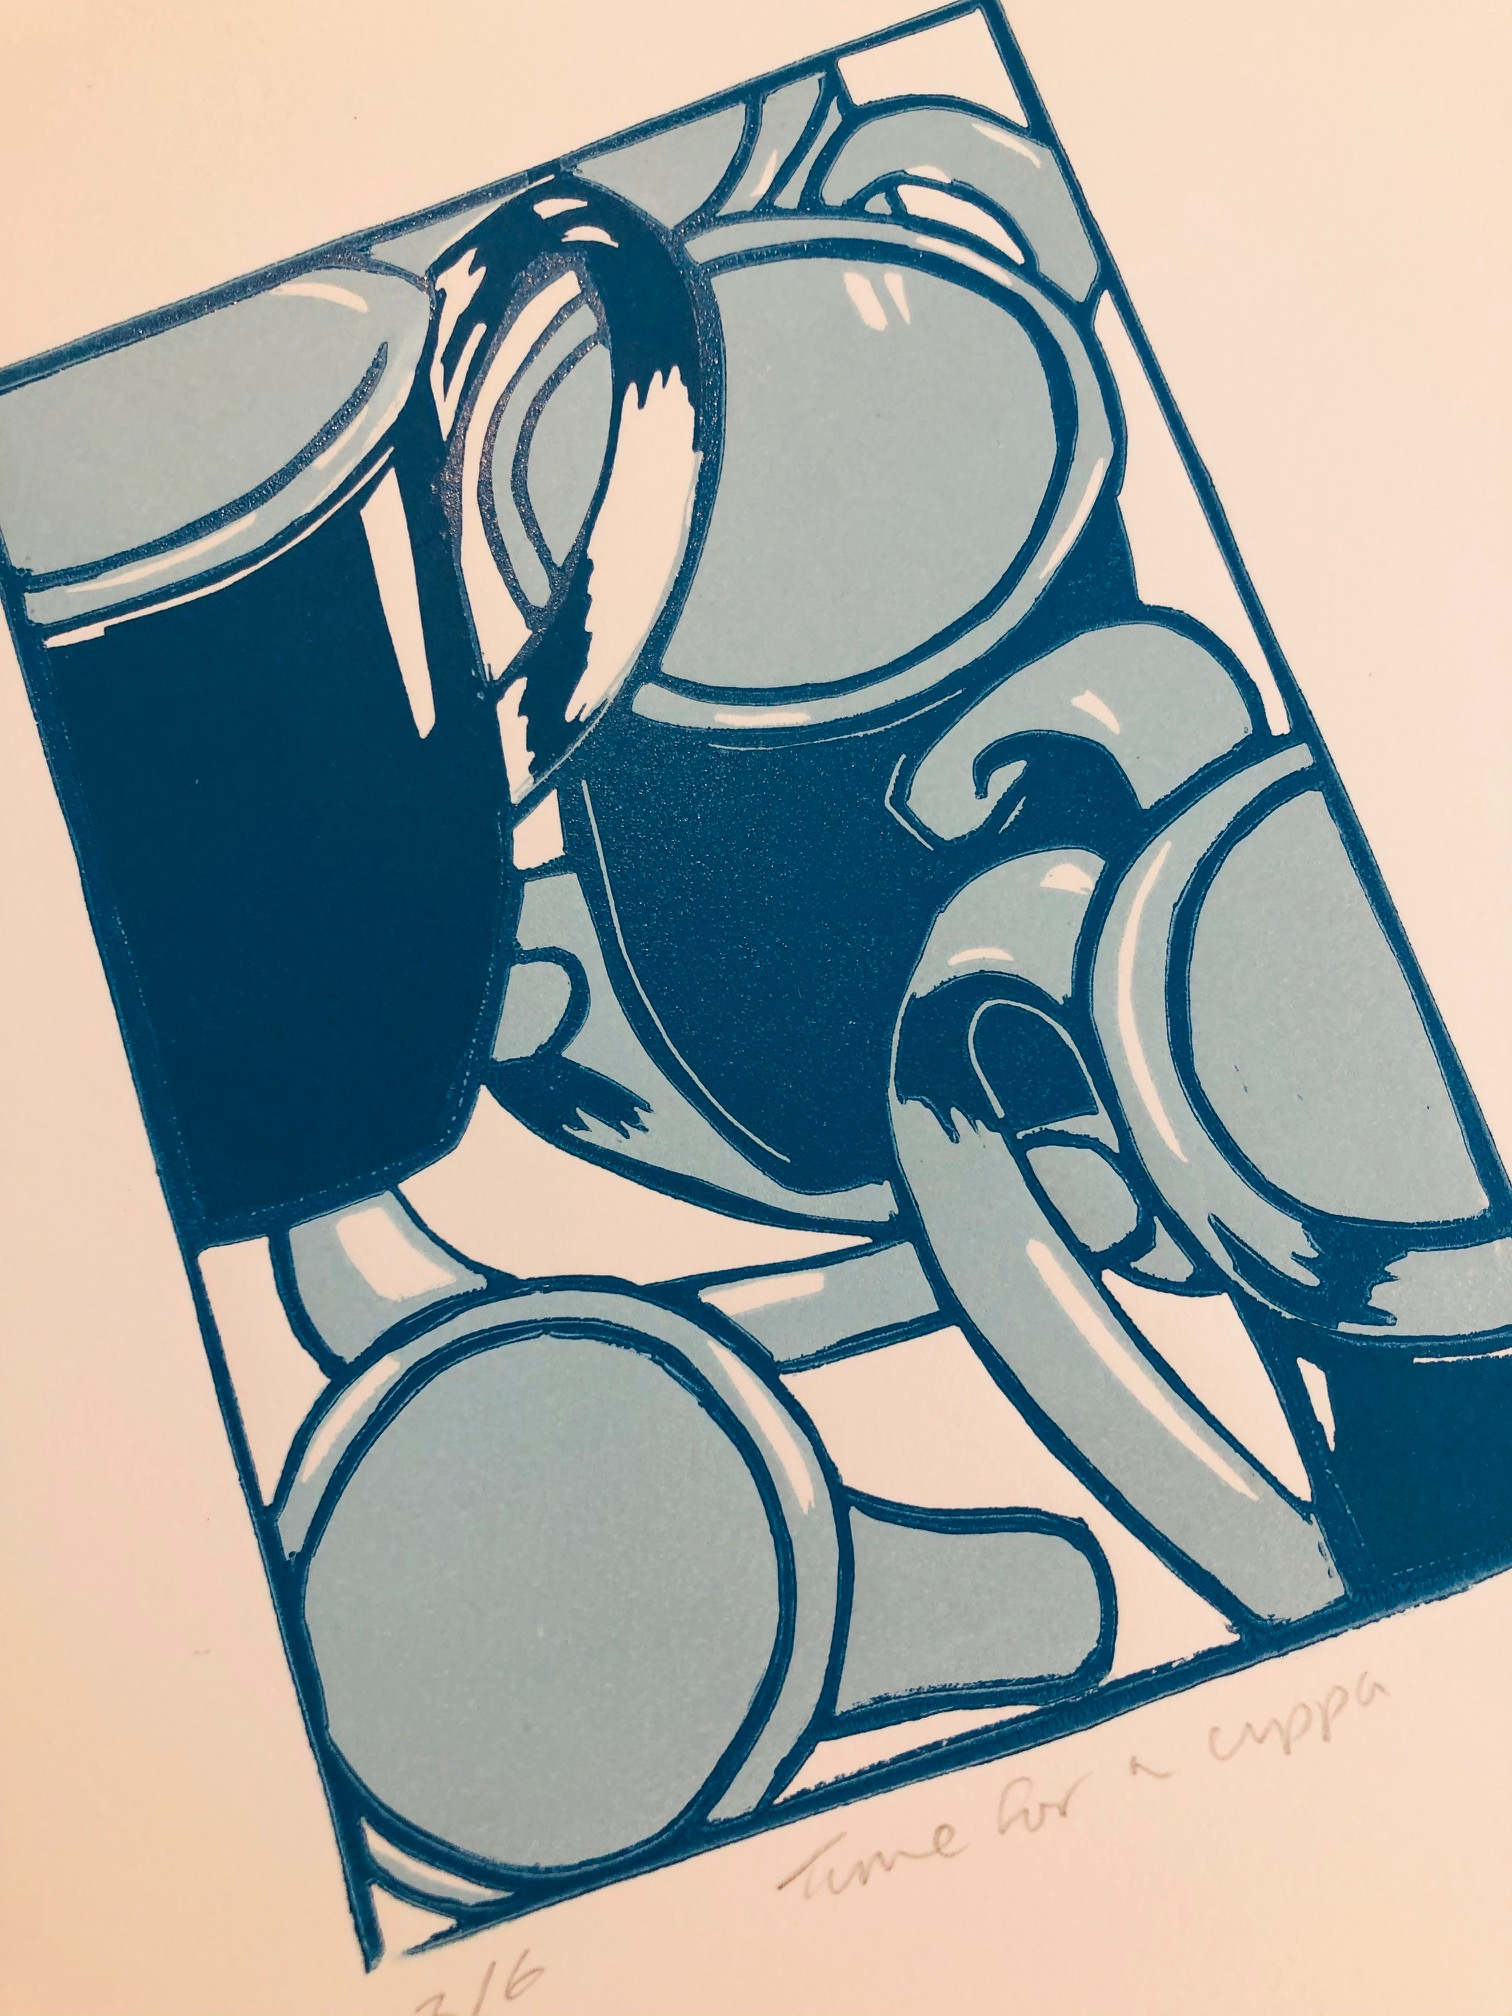 'Time for a Cuppa' Limited Edition Reduction Lino Print by Mandy Smith